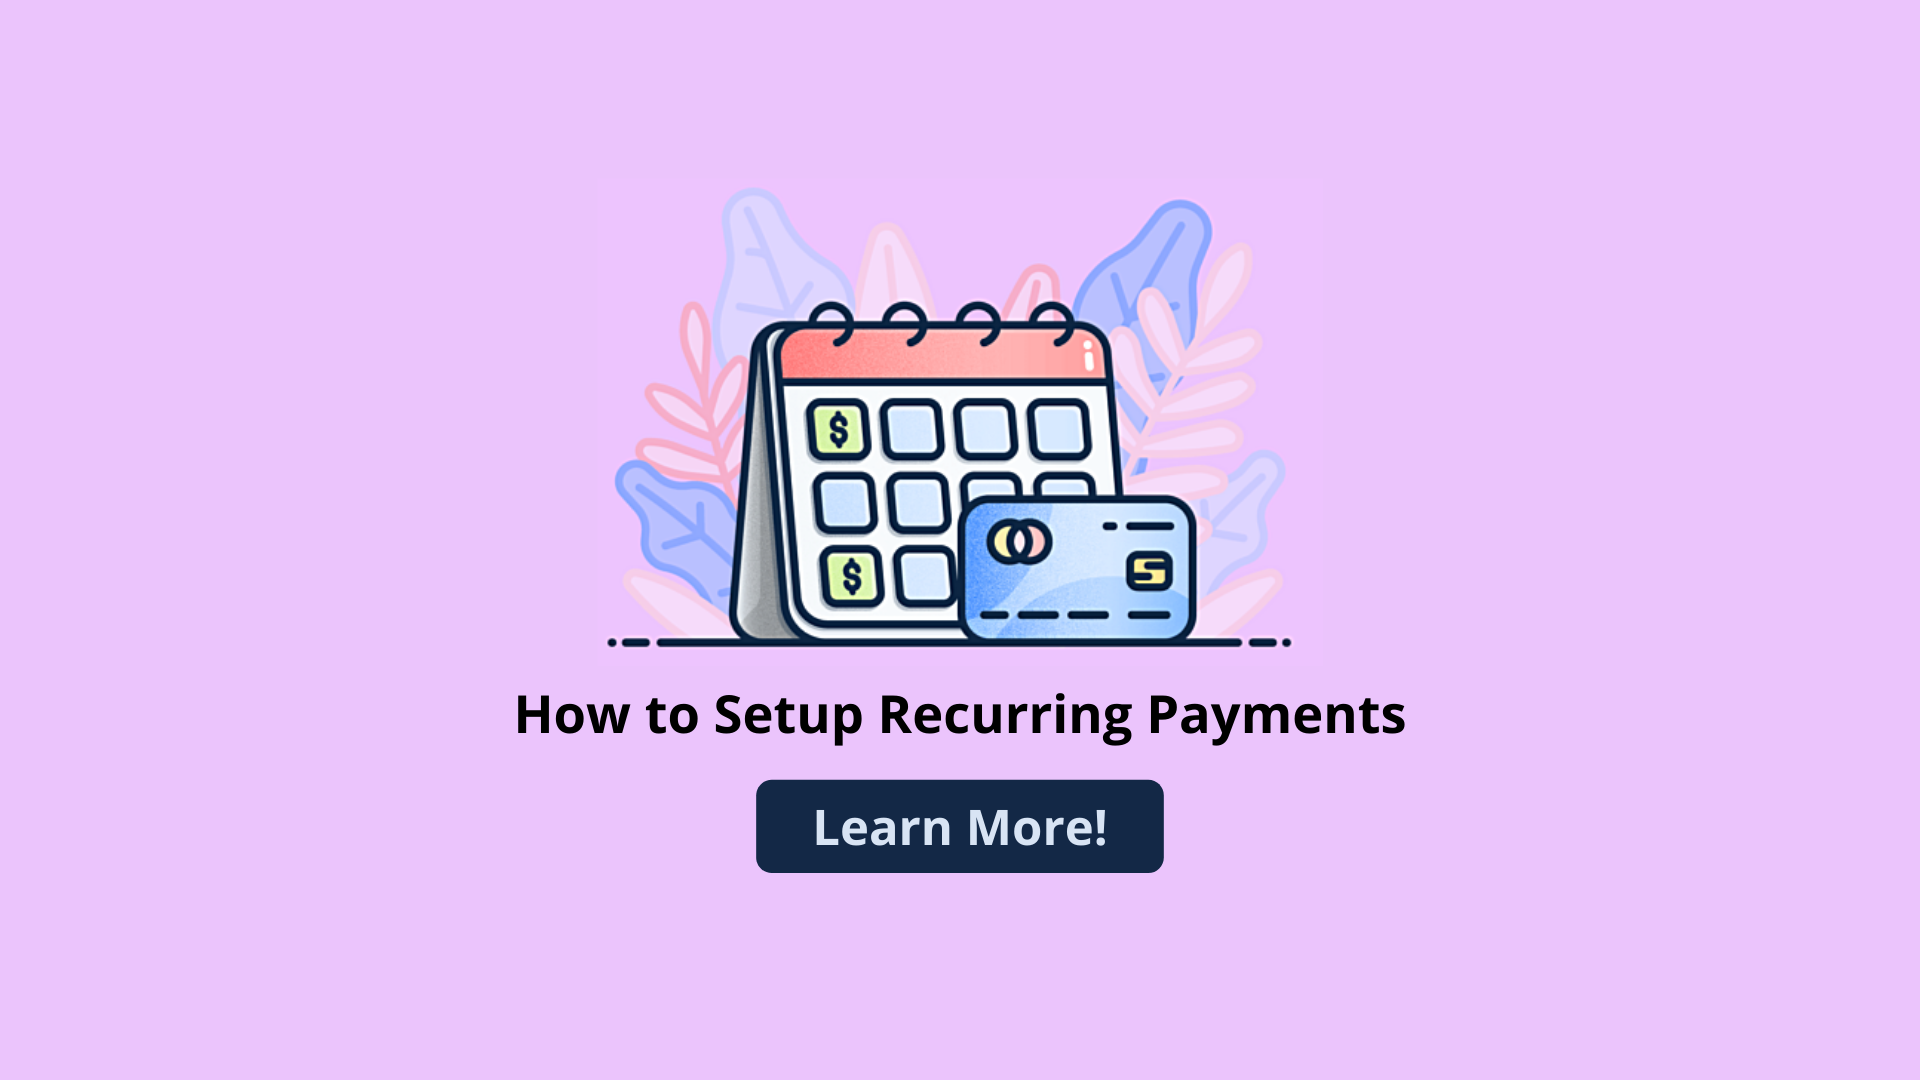 How to Setup Recurring Payments